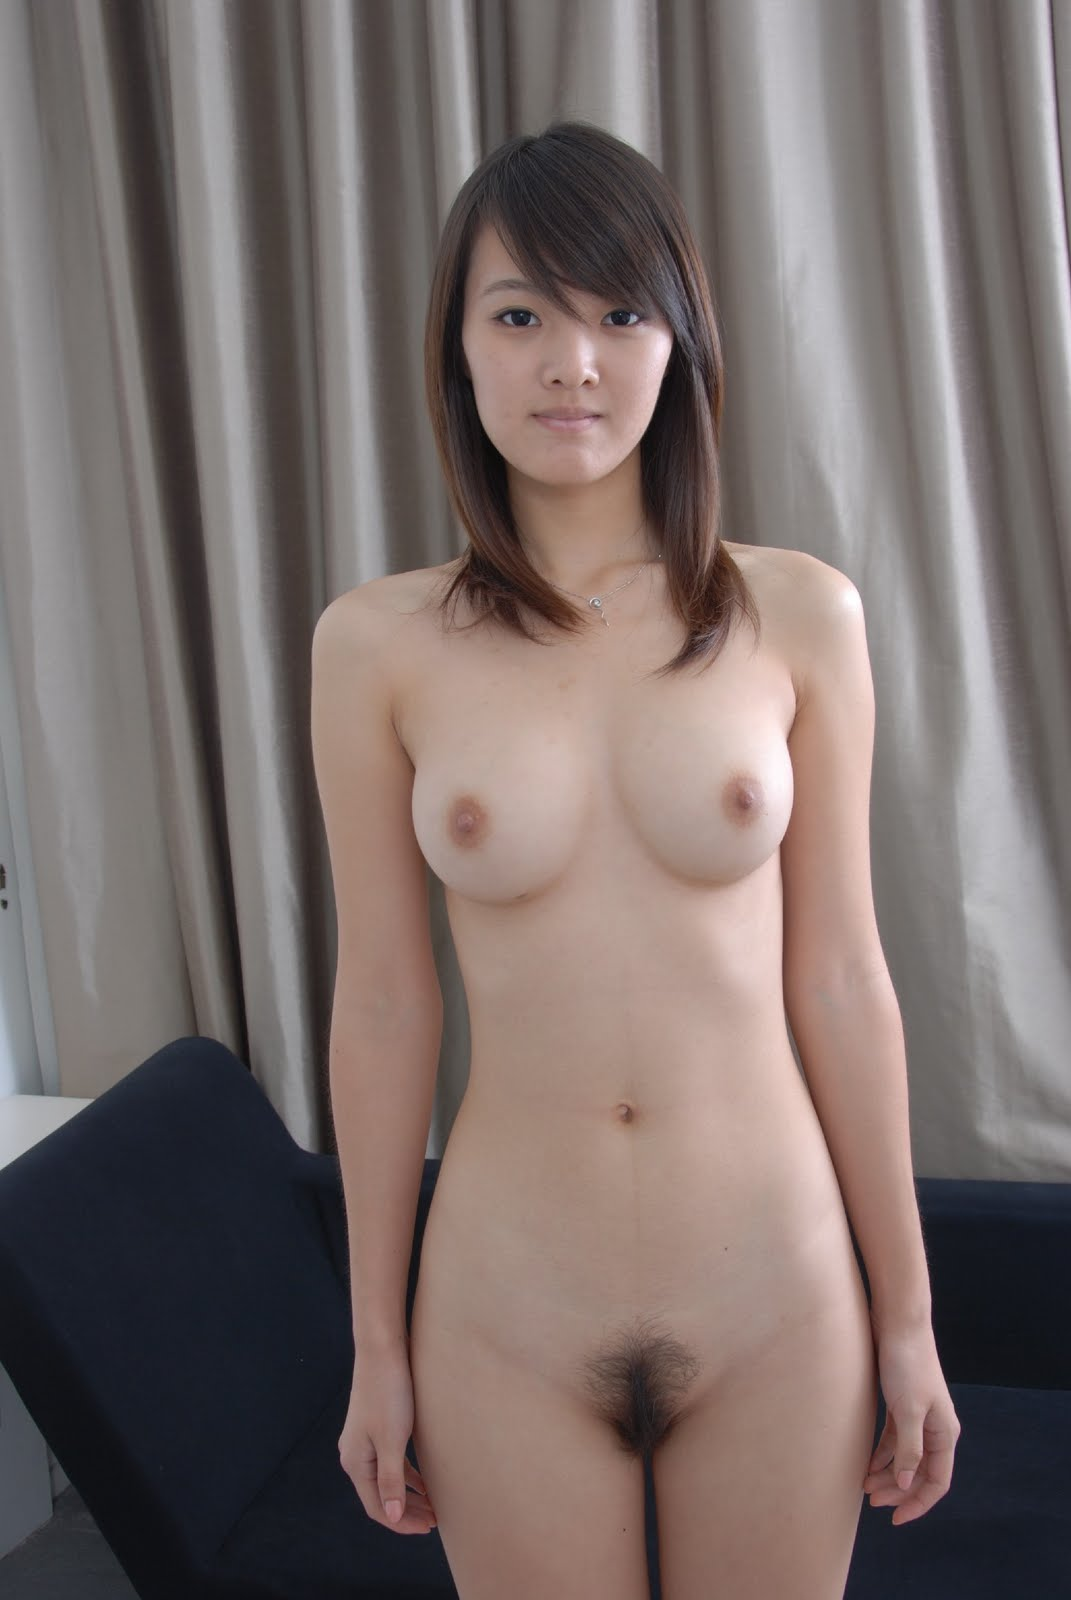 girls china nude hot